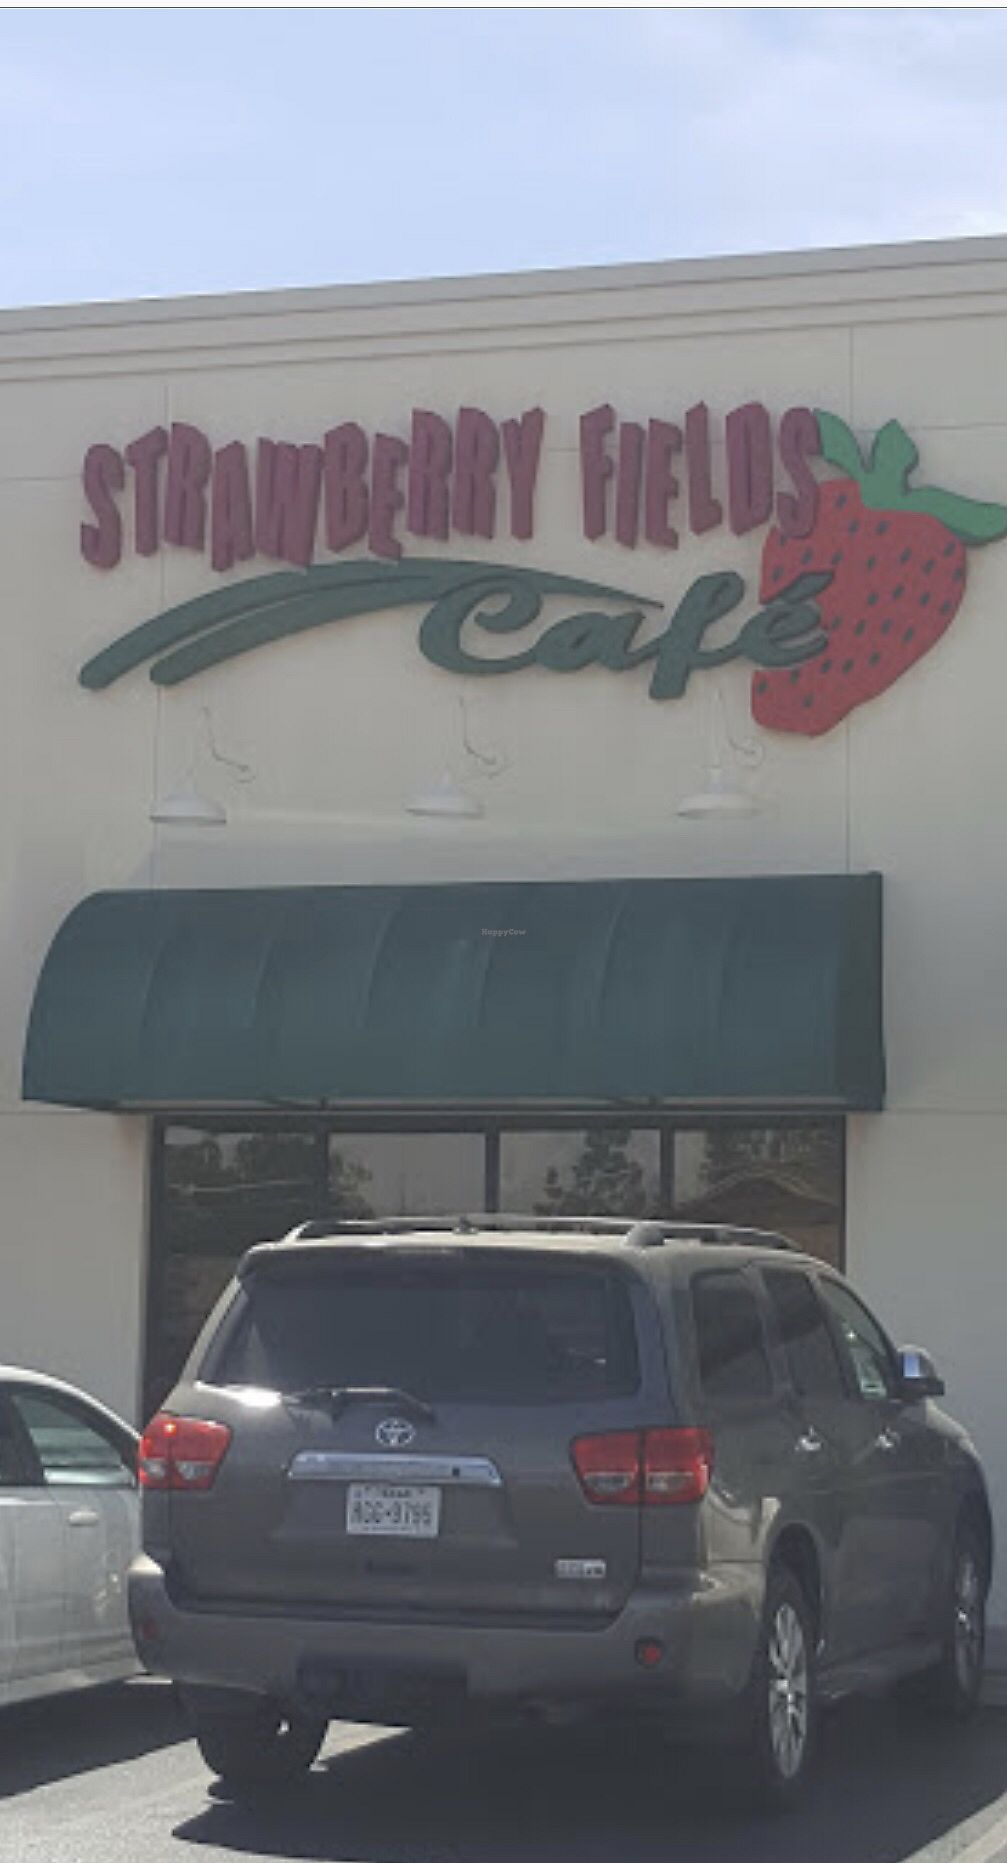 """Photo of Strawberry Fields Cafe  by <a href=""""/members/profile/ashlinmichelle7"""">ashlinmichelle7</a> <br/>Outside  <br/> April 24, 2018  - <a href='/contact/abuse/image/102109/390579'>Report</a>"""